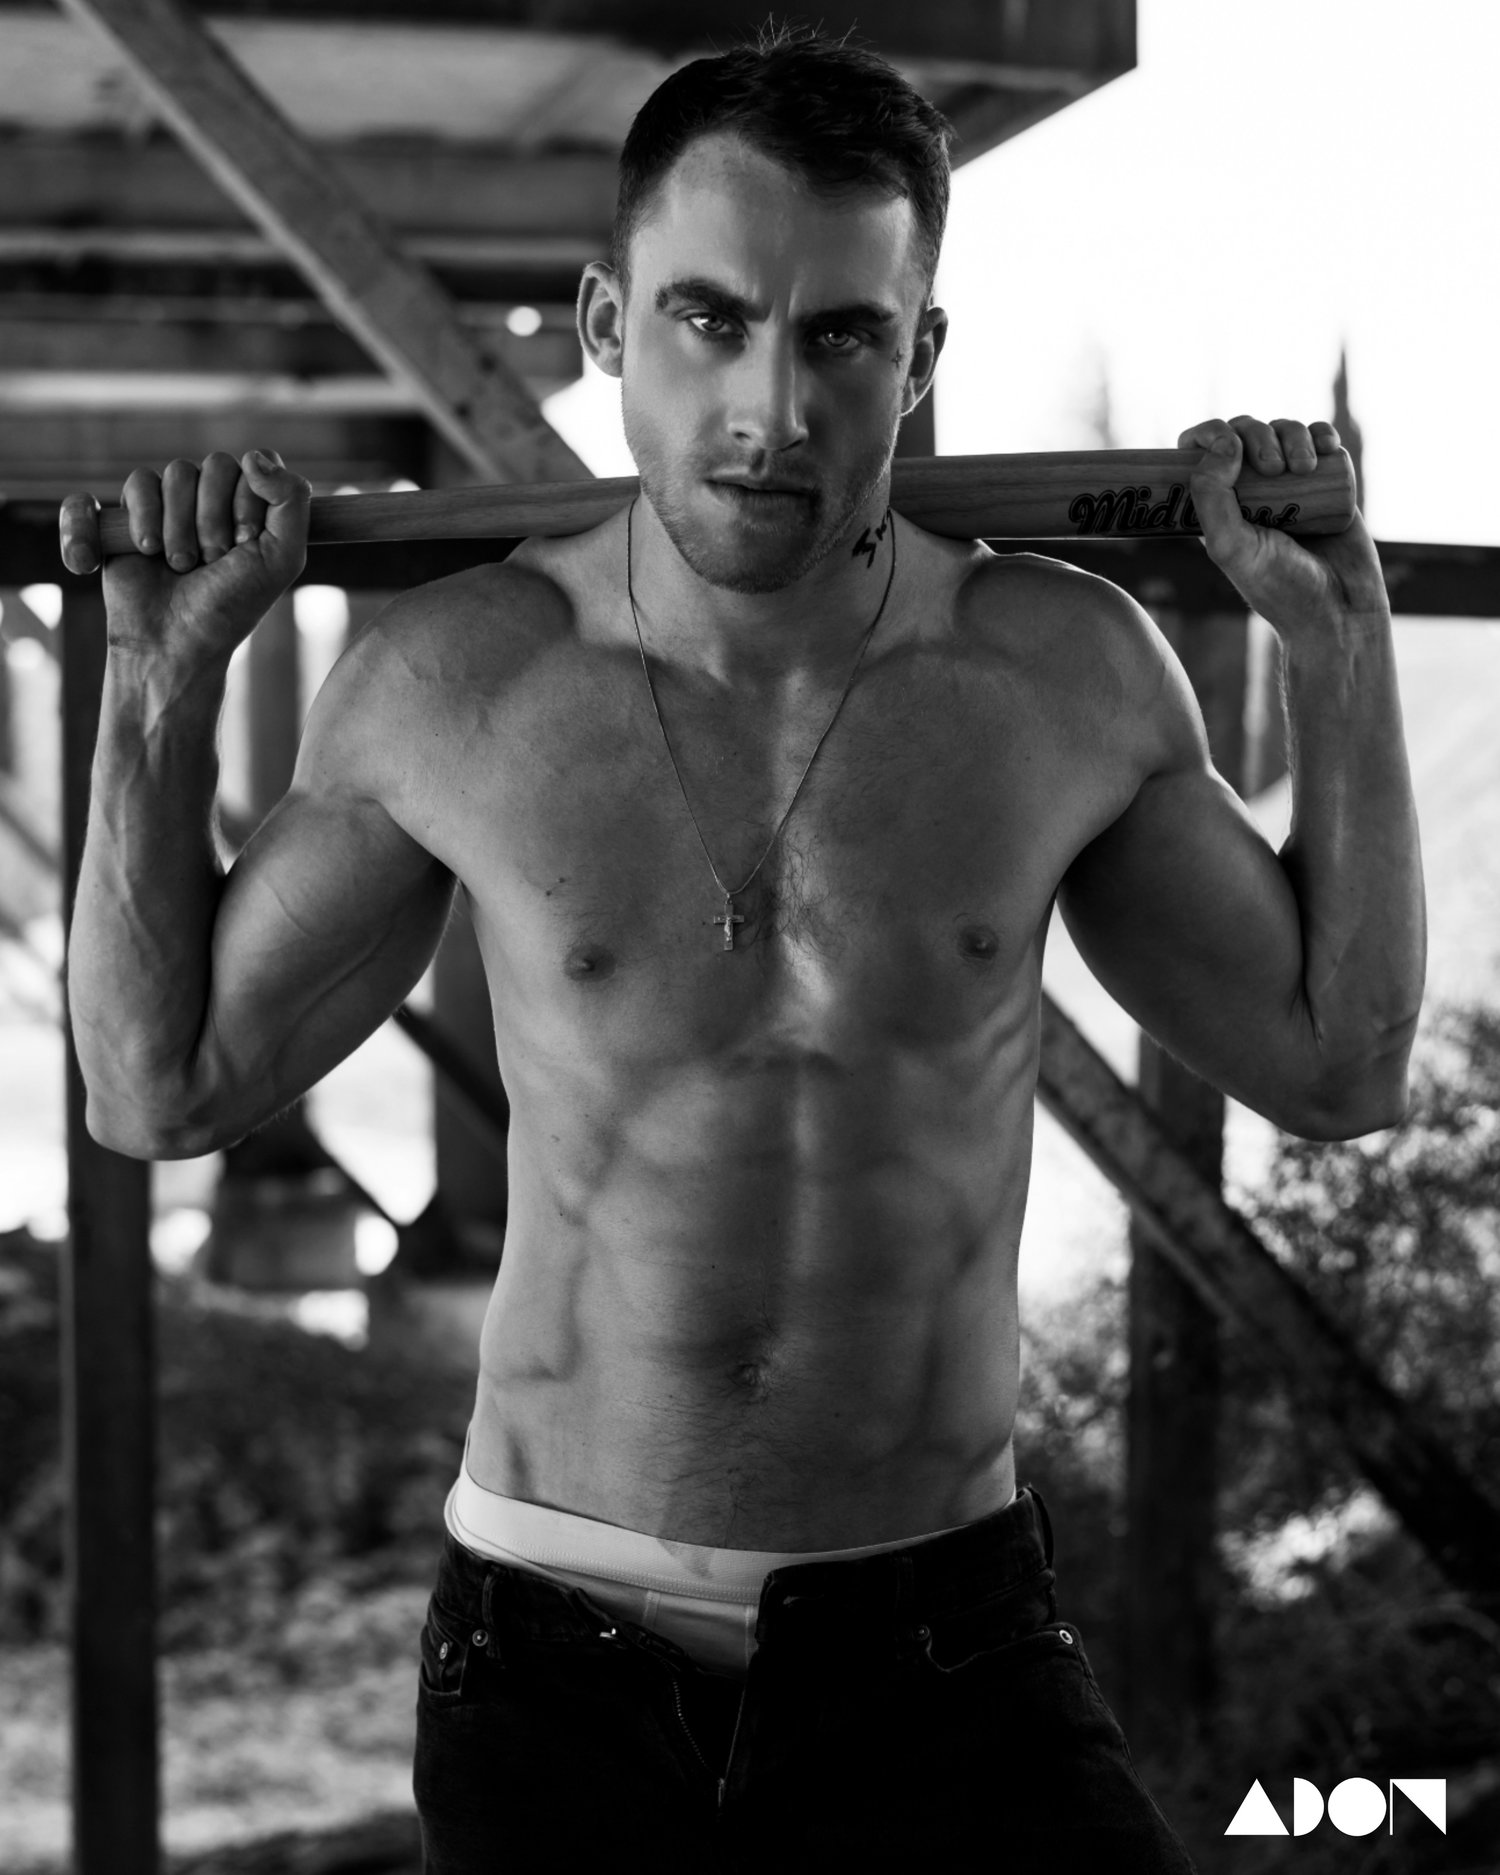 Adon Exclusive: Model Robert Yorke By Stavros Christodoulou